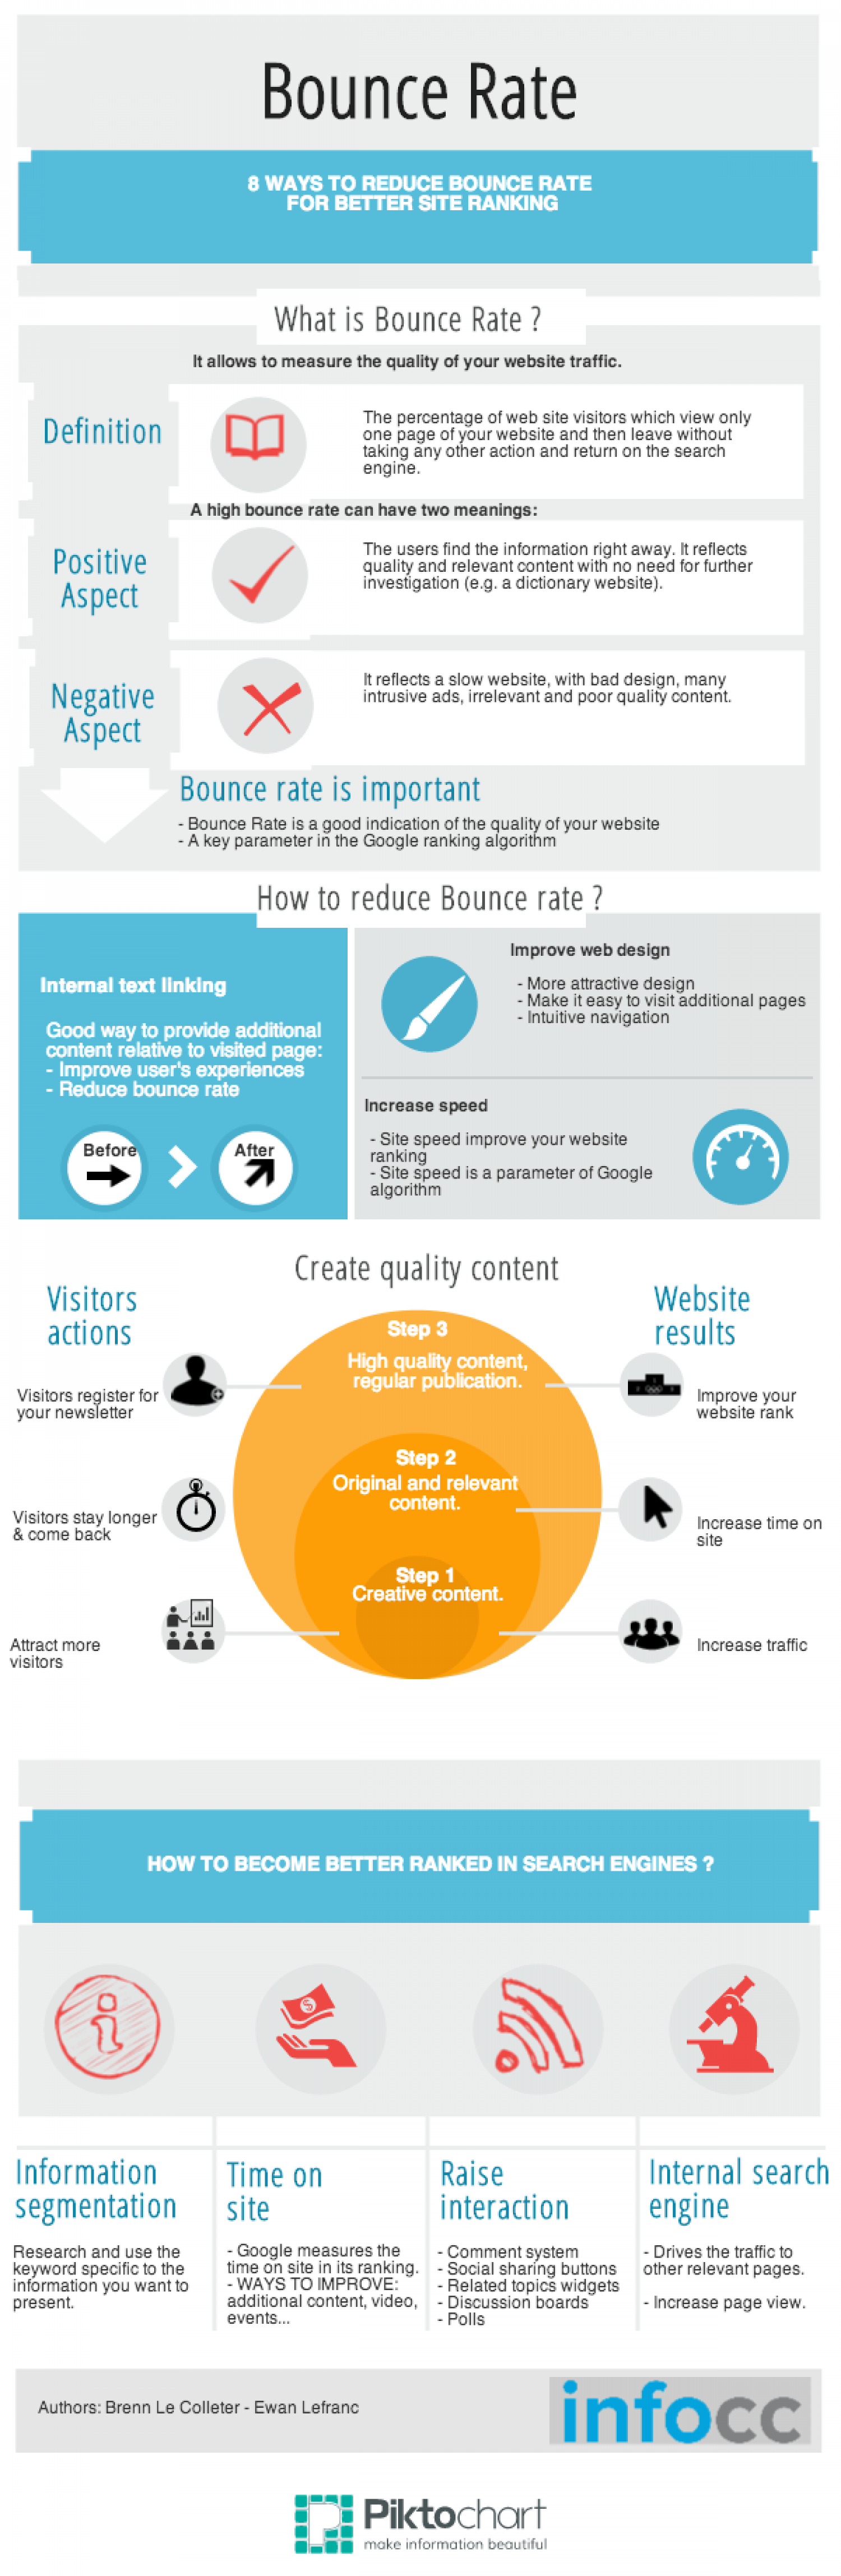 8 Ways to Reduce Website Bounce Rate Infographic